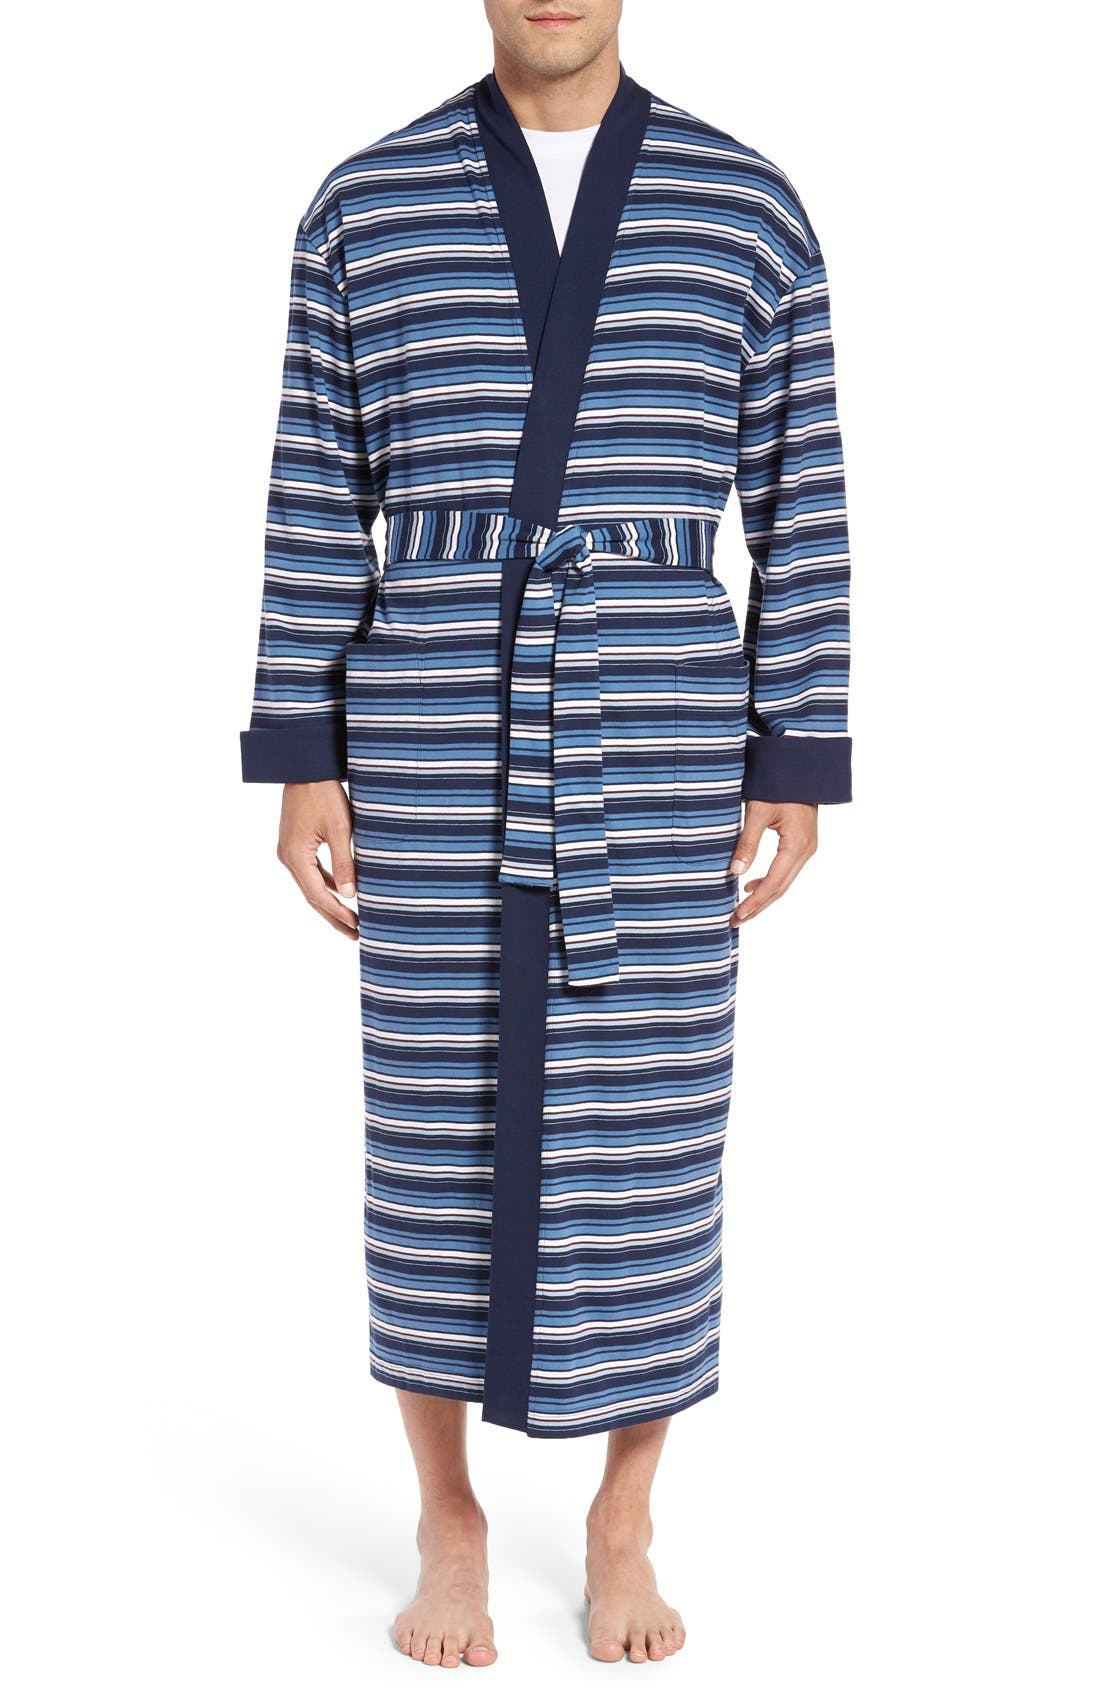 'Field House' Cotton Robe,                         Main,                         color, Navy/ Burgundy Stripe